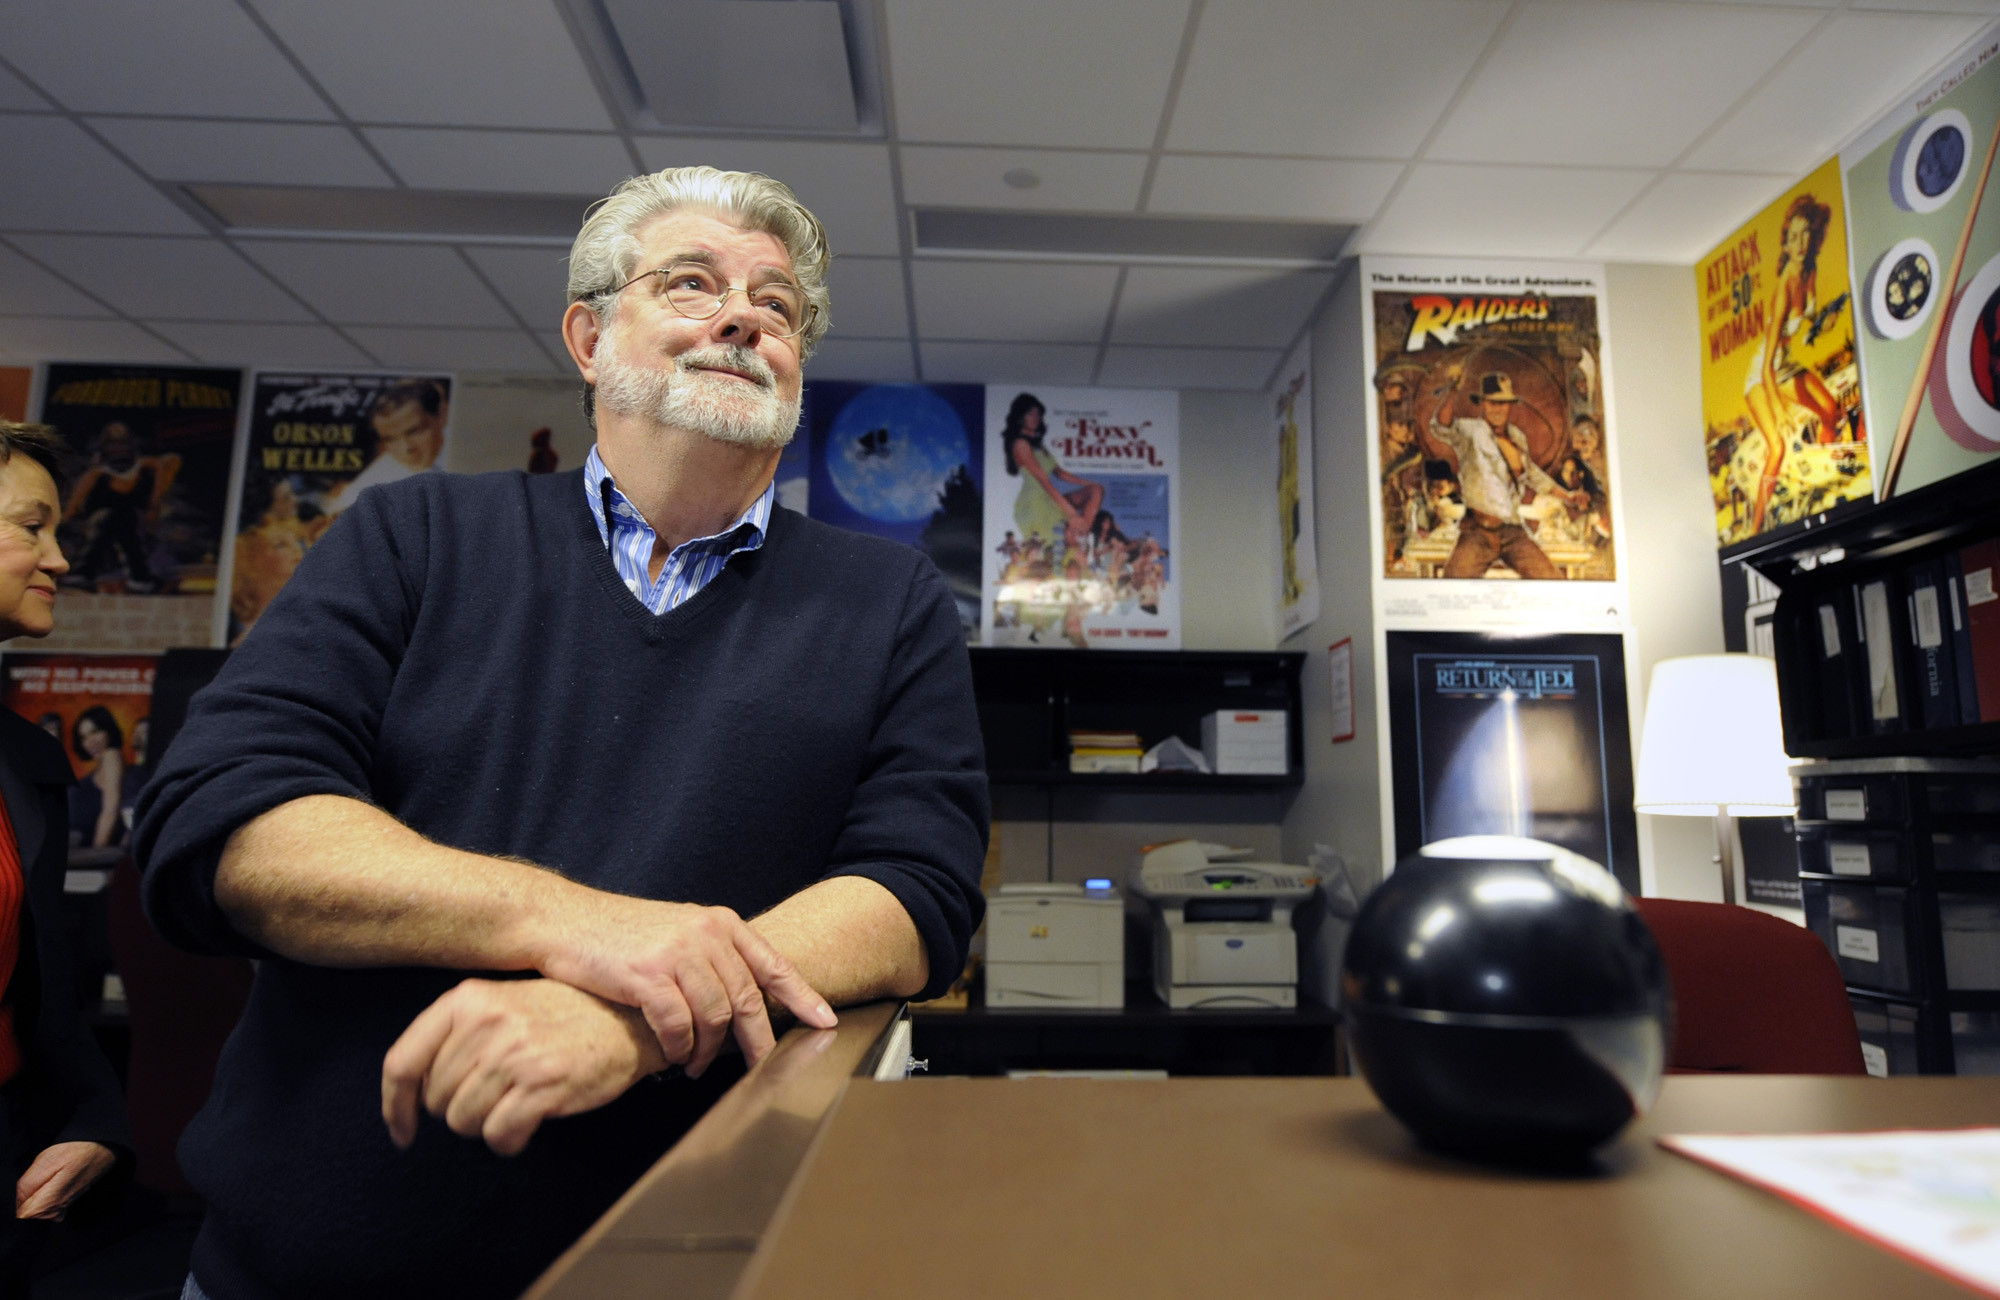 George lucas offered new museum site in san francisco la for Star wars museum san francisco